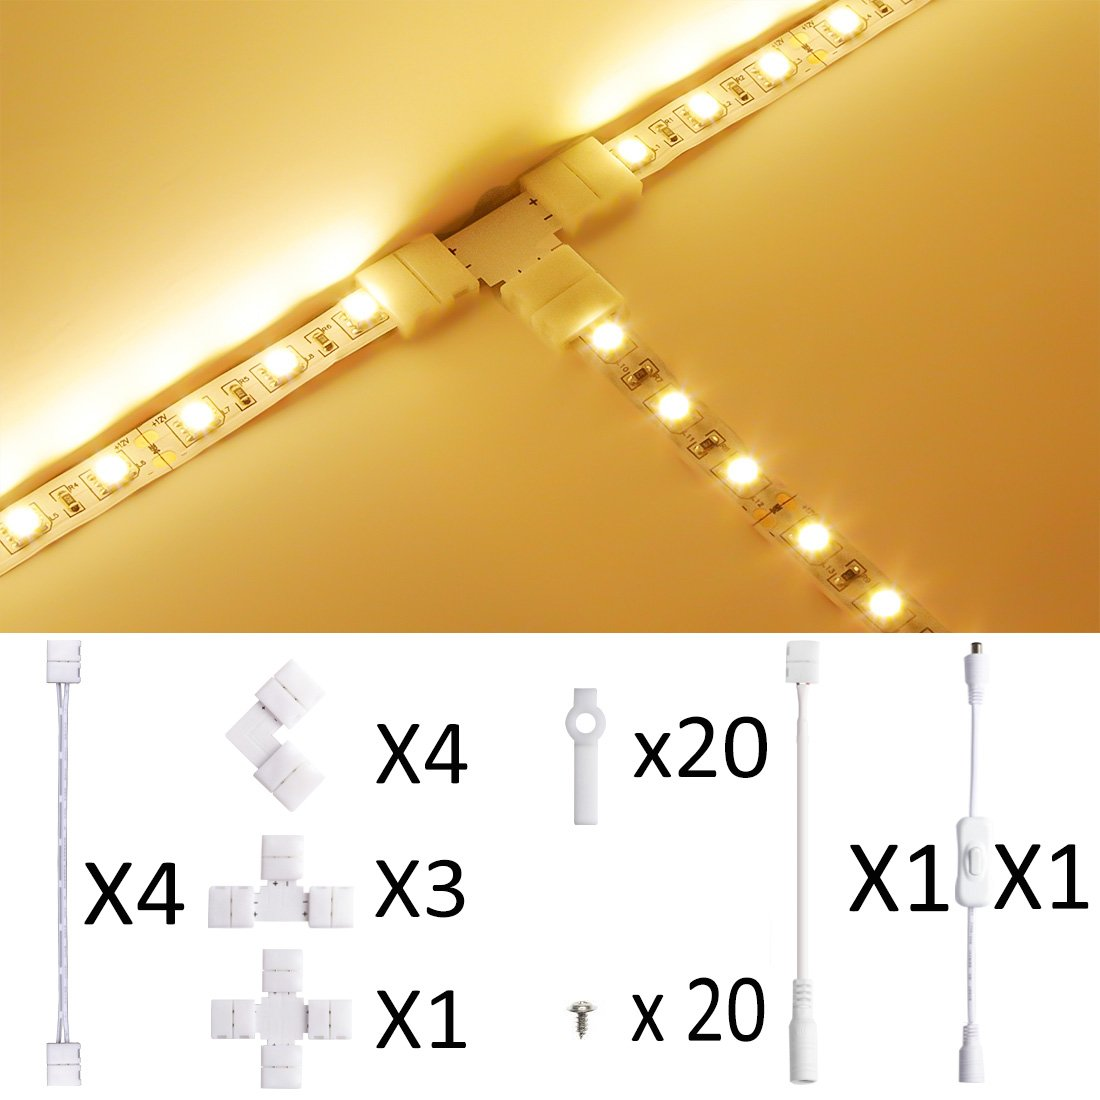 LED Strip Light Connector,10mm SMD5630 and 5050 Single Color,Munting Bracket Kit, Screws, Strip Light Gapless Connector, DC On/off Switch included for 2-Pin LED Strip Connector